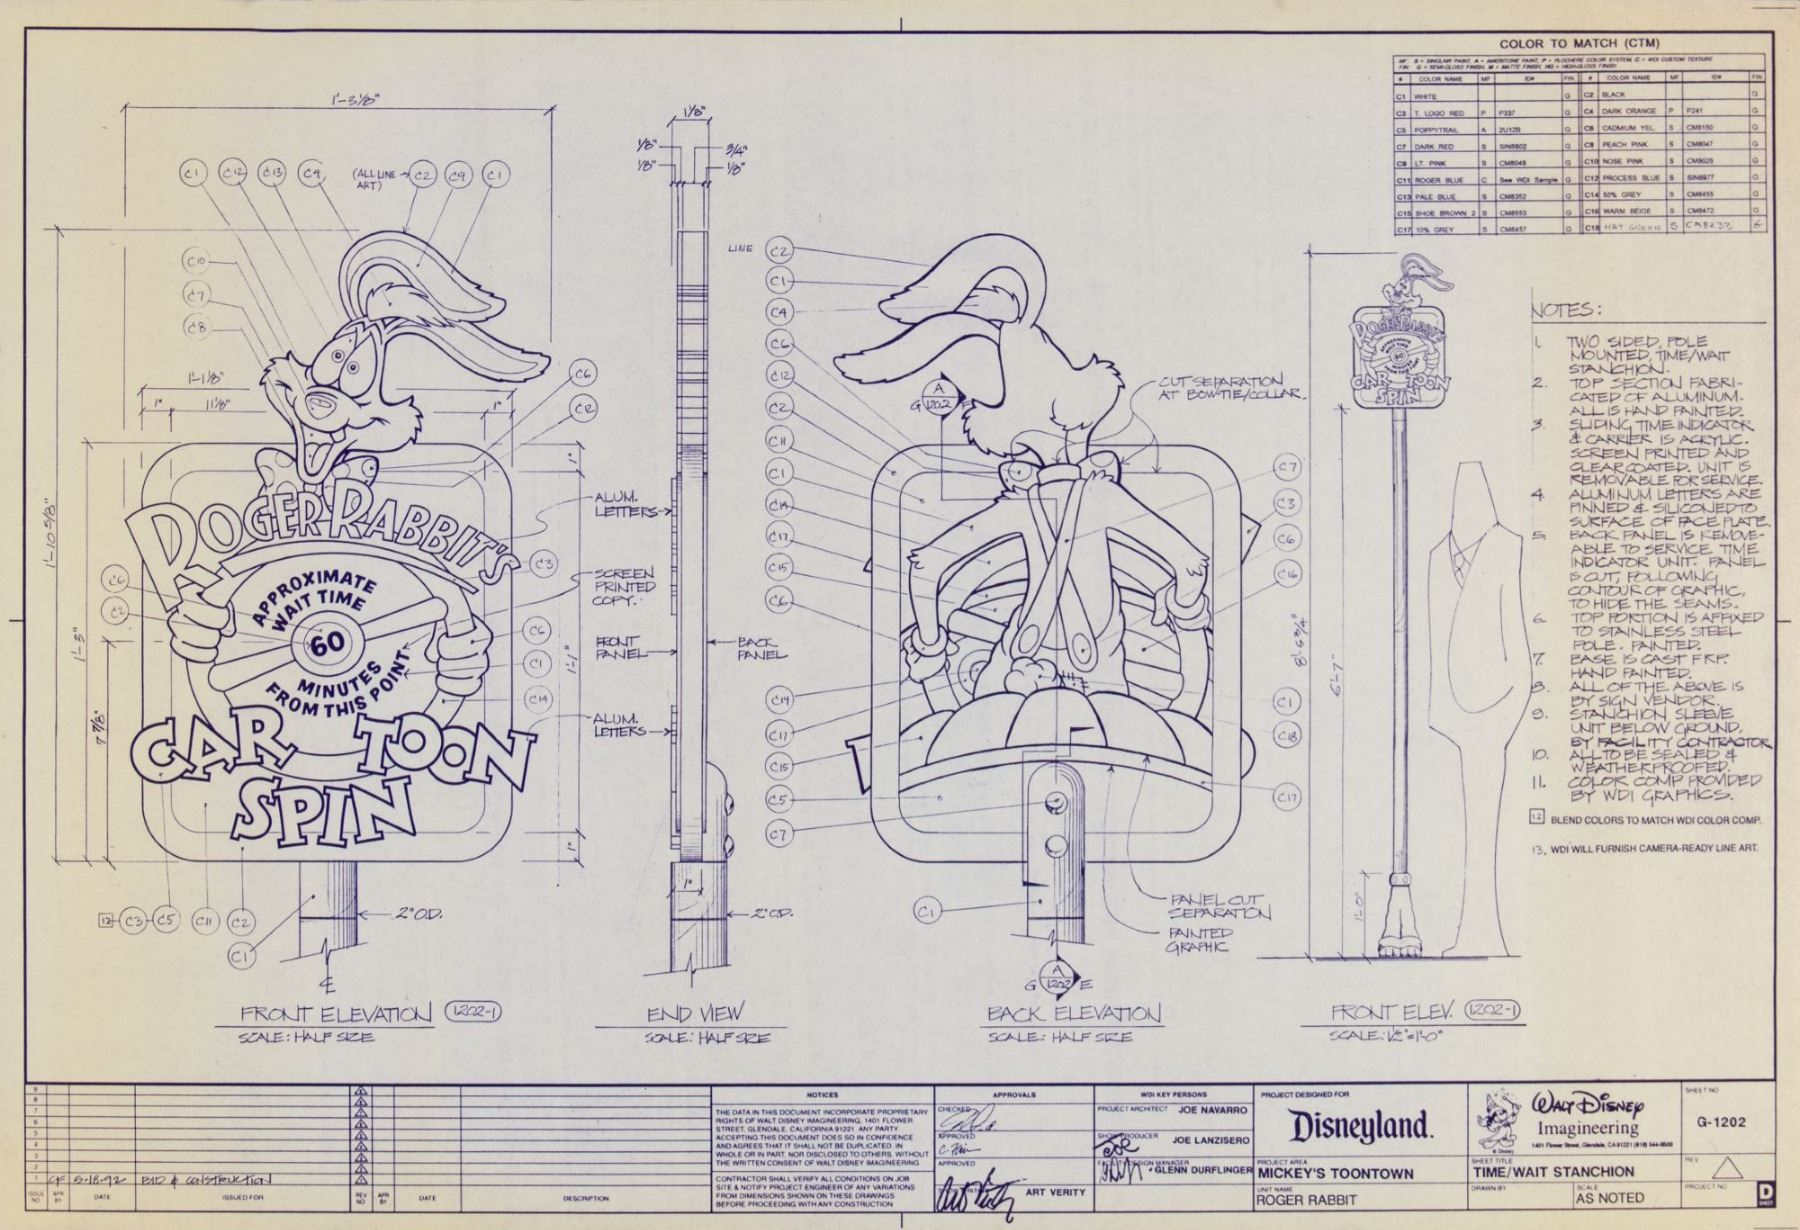 hight resolution of  image 4 collection of 4 roger rabbit s car toon spin blueprints